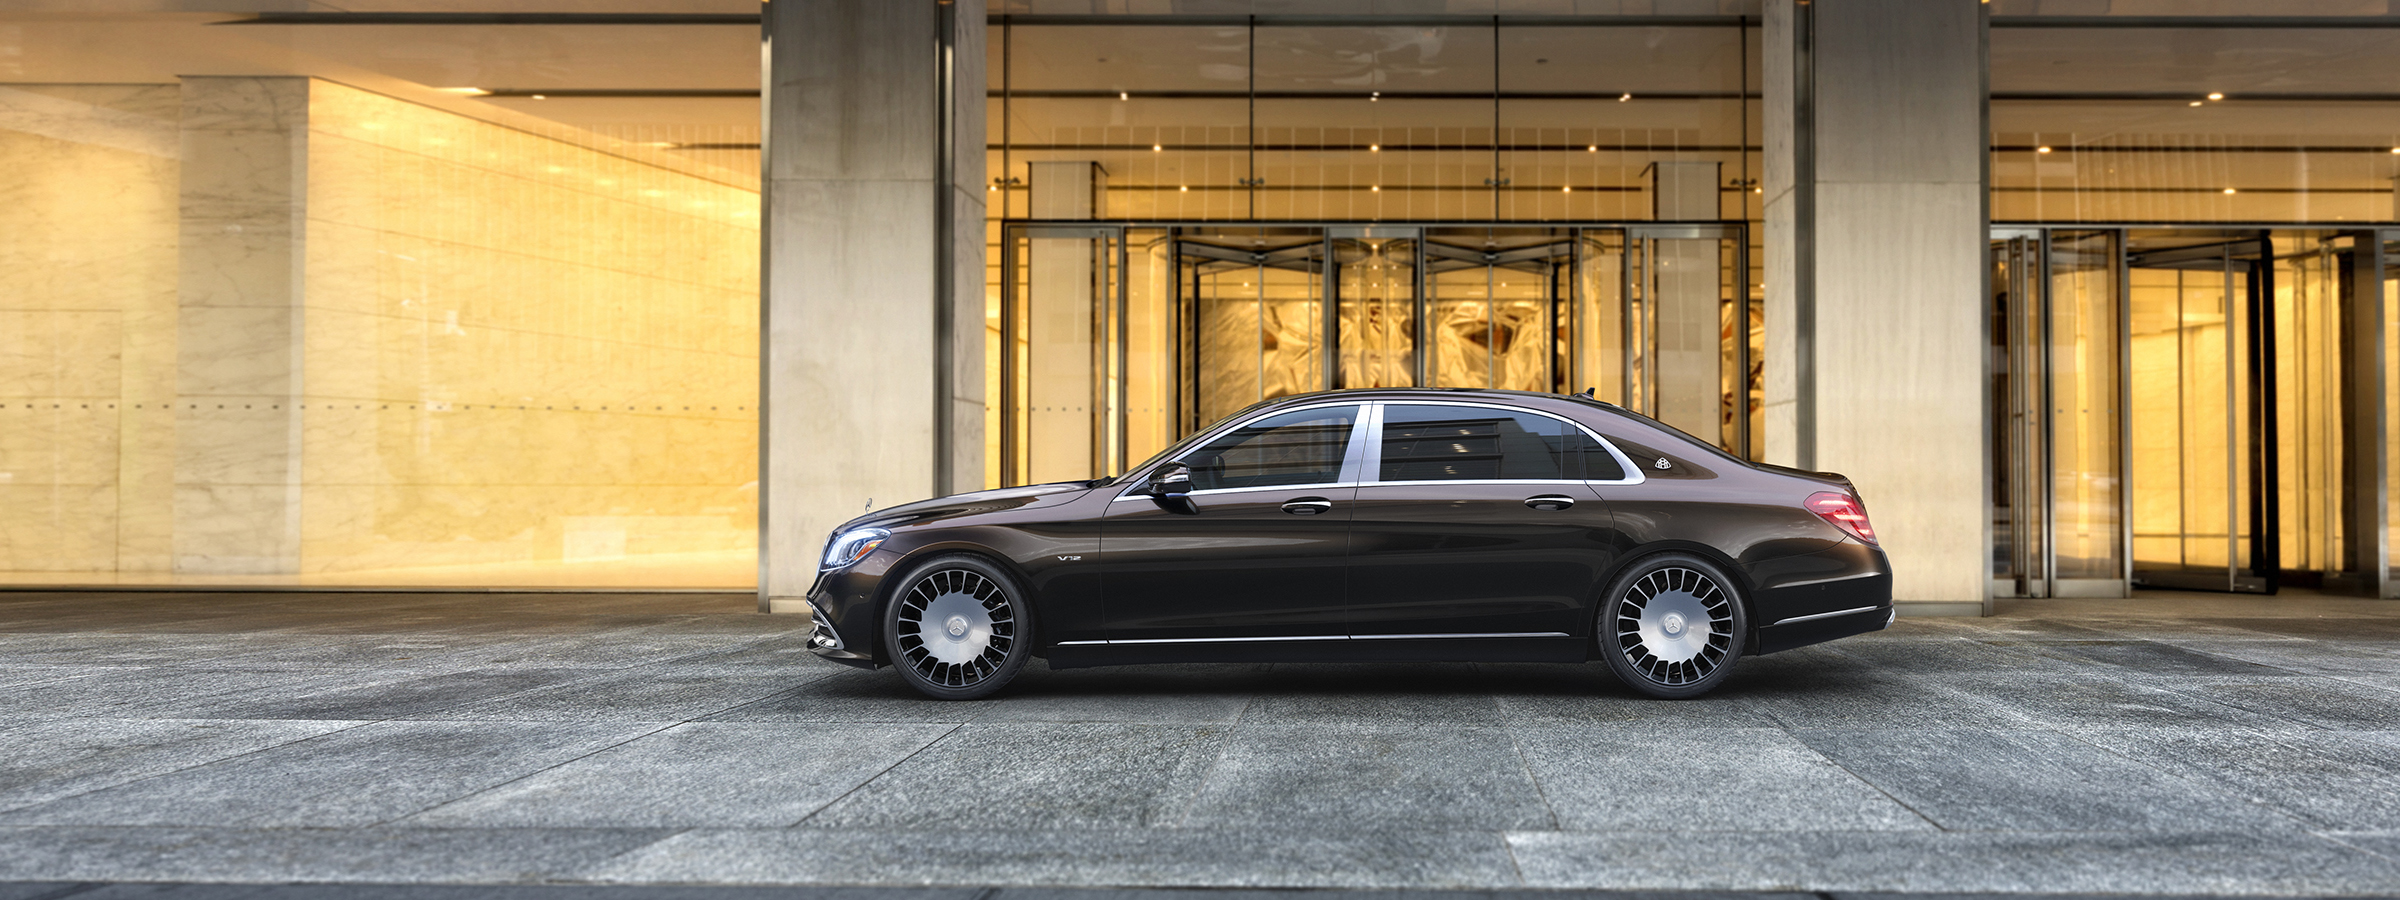 La Mercedes-Maybach 2018